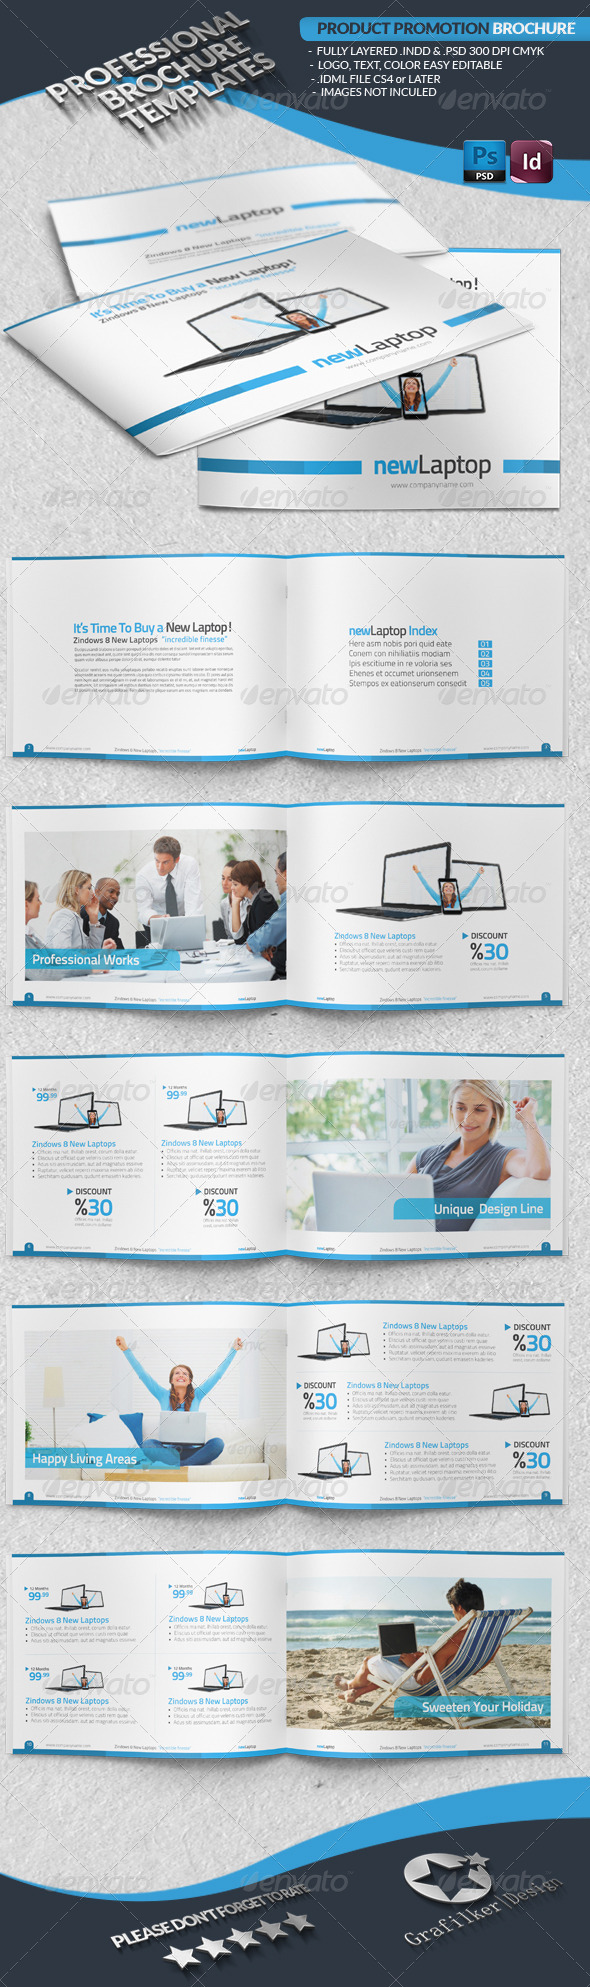 GraphicRiver Product Promotion Brochure 4199226